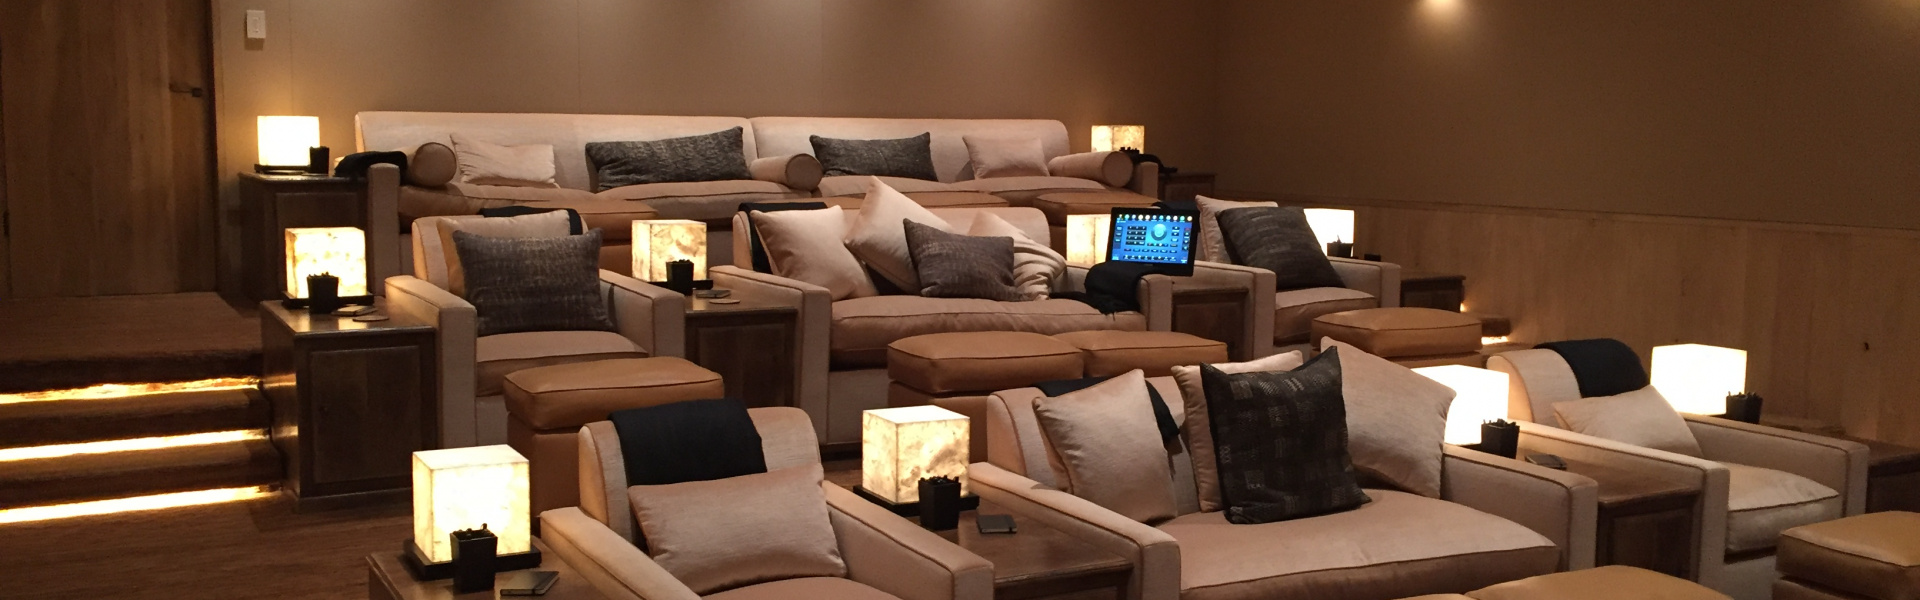 Av Installation Smart Home Services Los Angeles Simply Home Entertainment